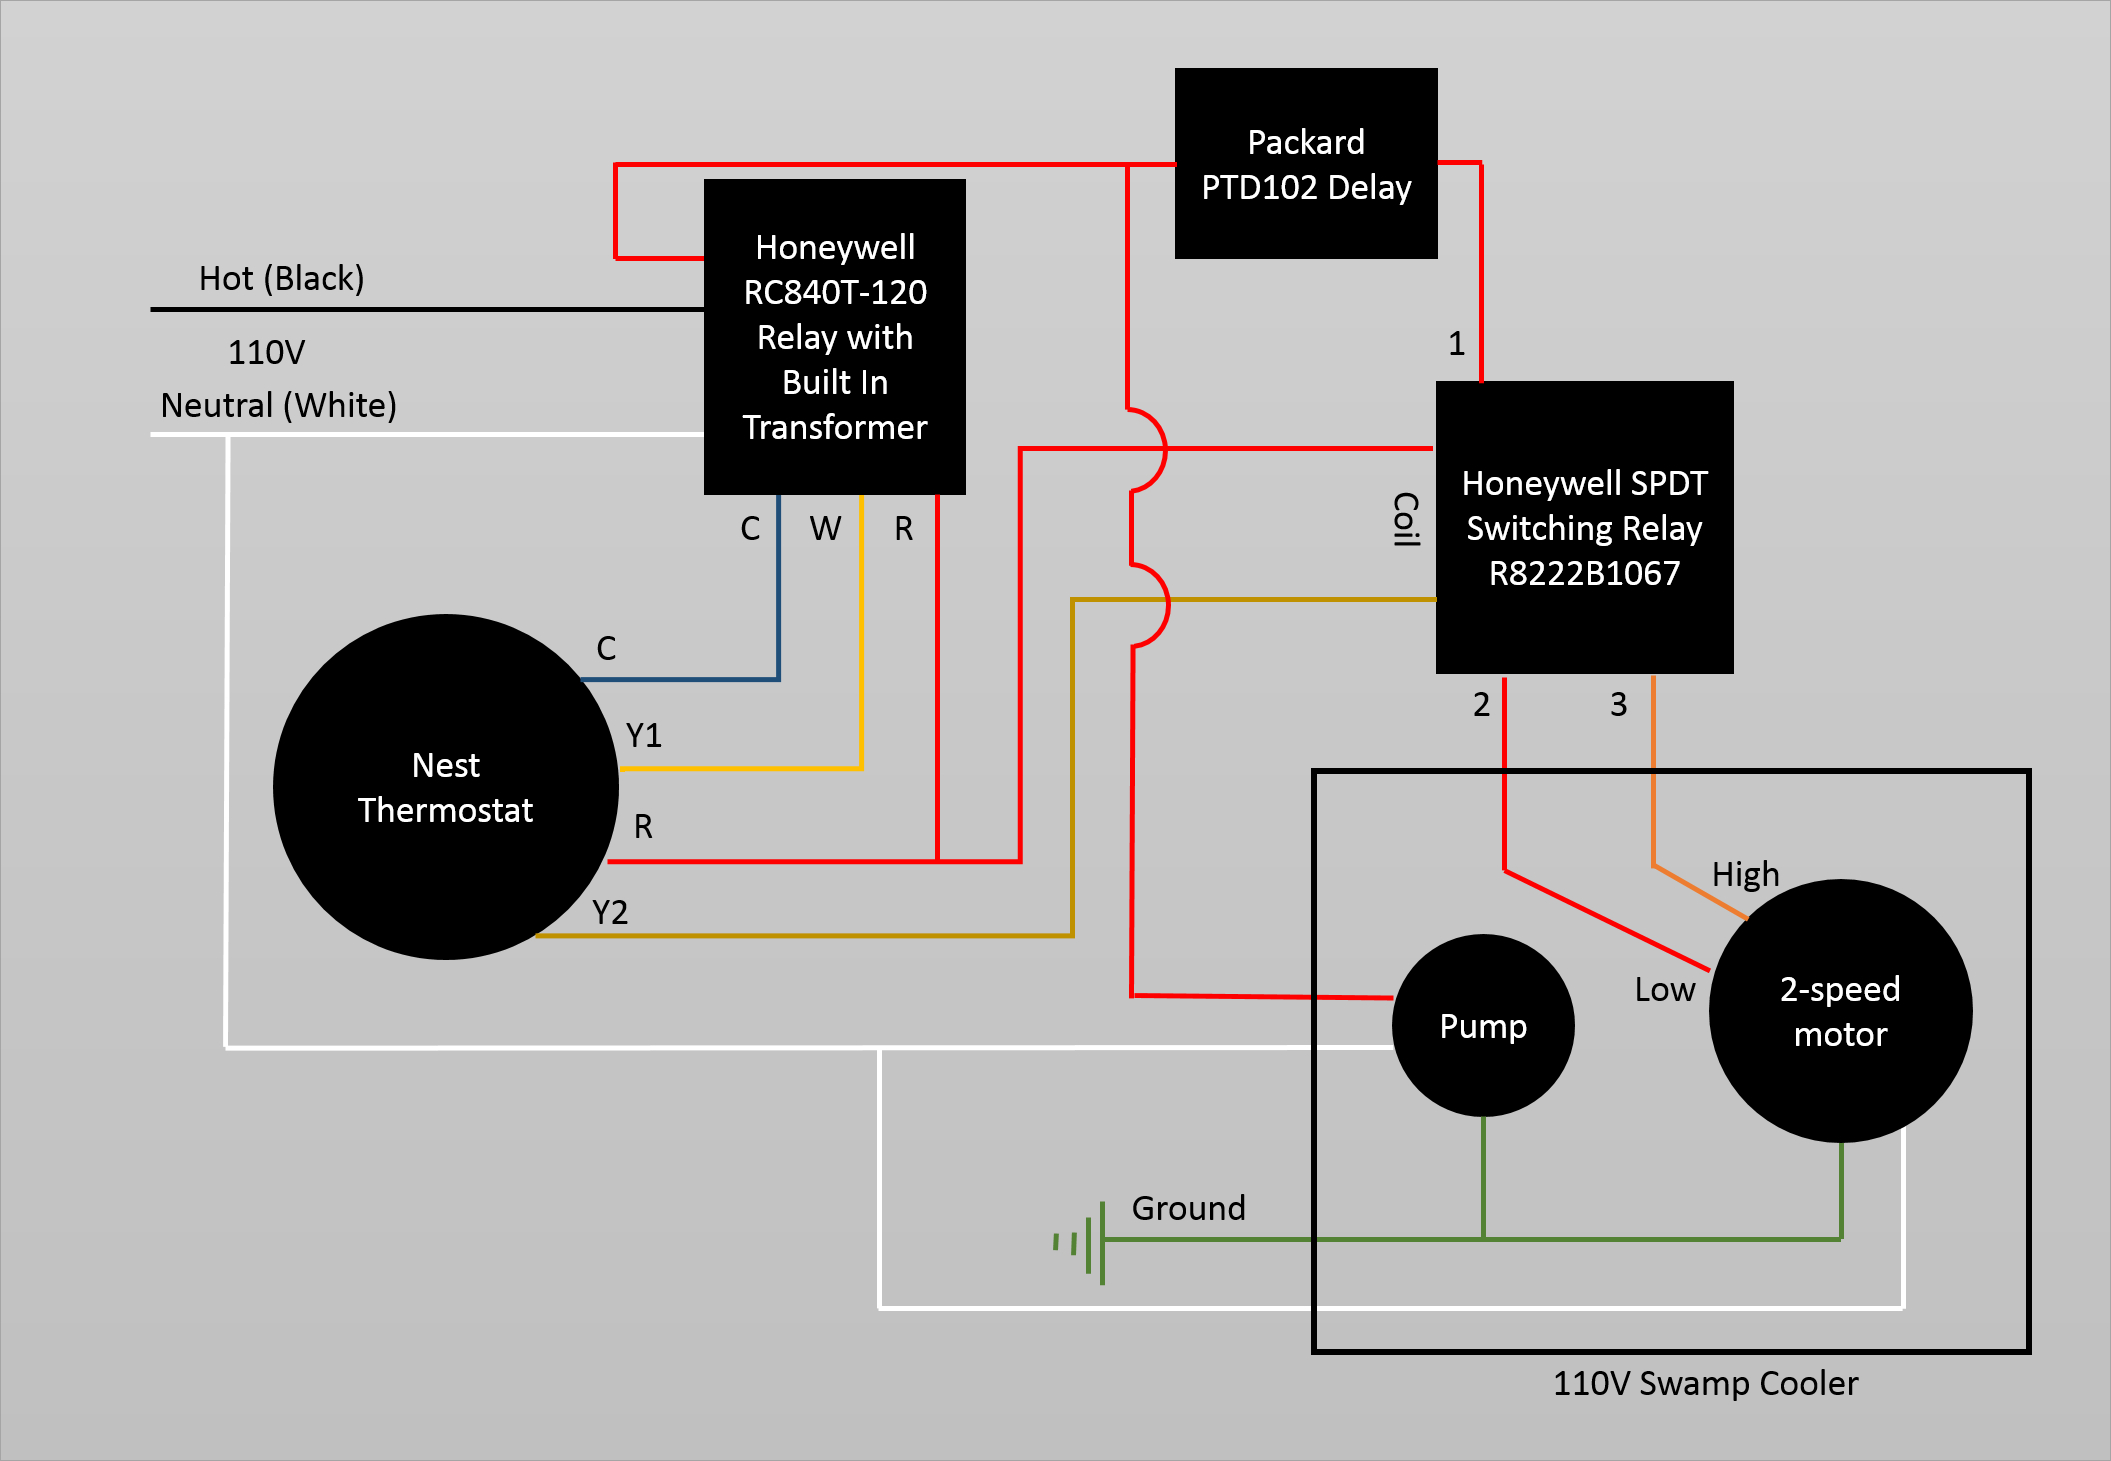 Wiring - Controlling 110V Swamp Cooler Using Nest Thermostat - Home - Nest Compatibility Checker Doesn't Give Wiring Diagram